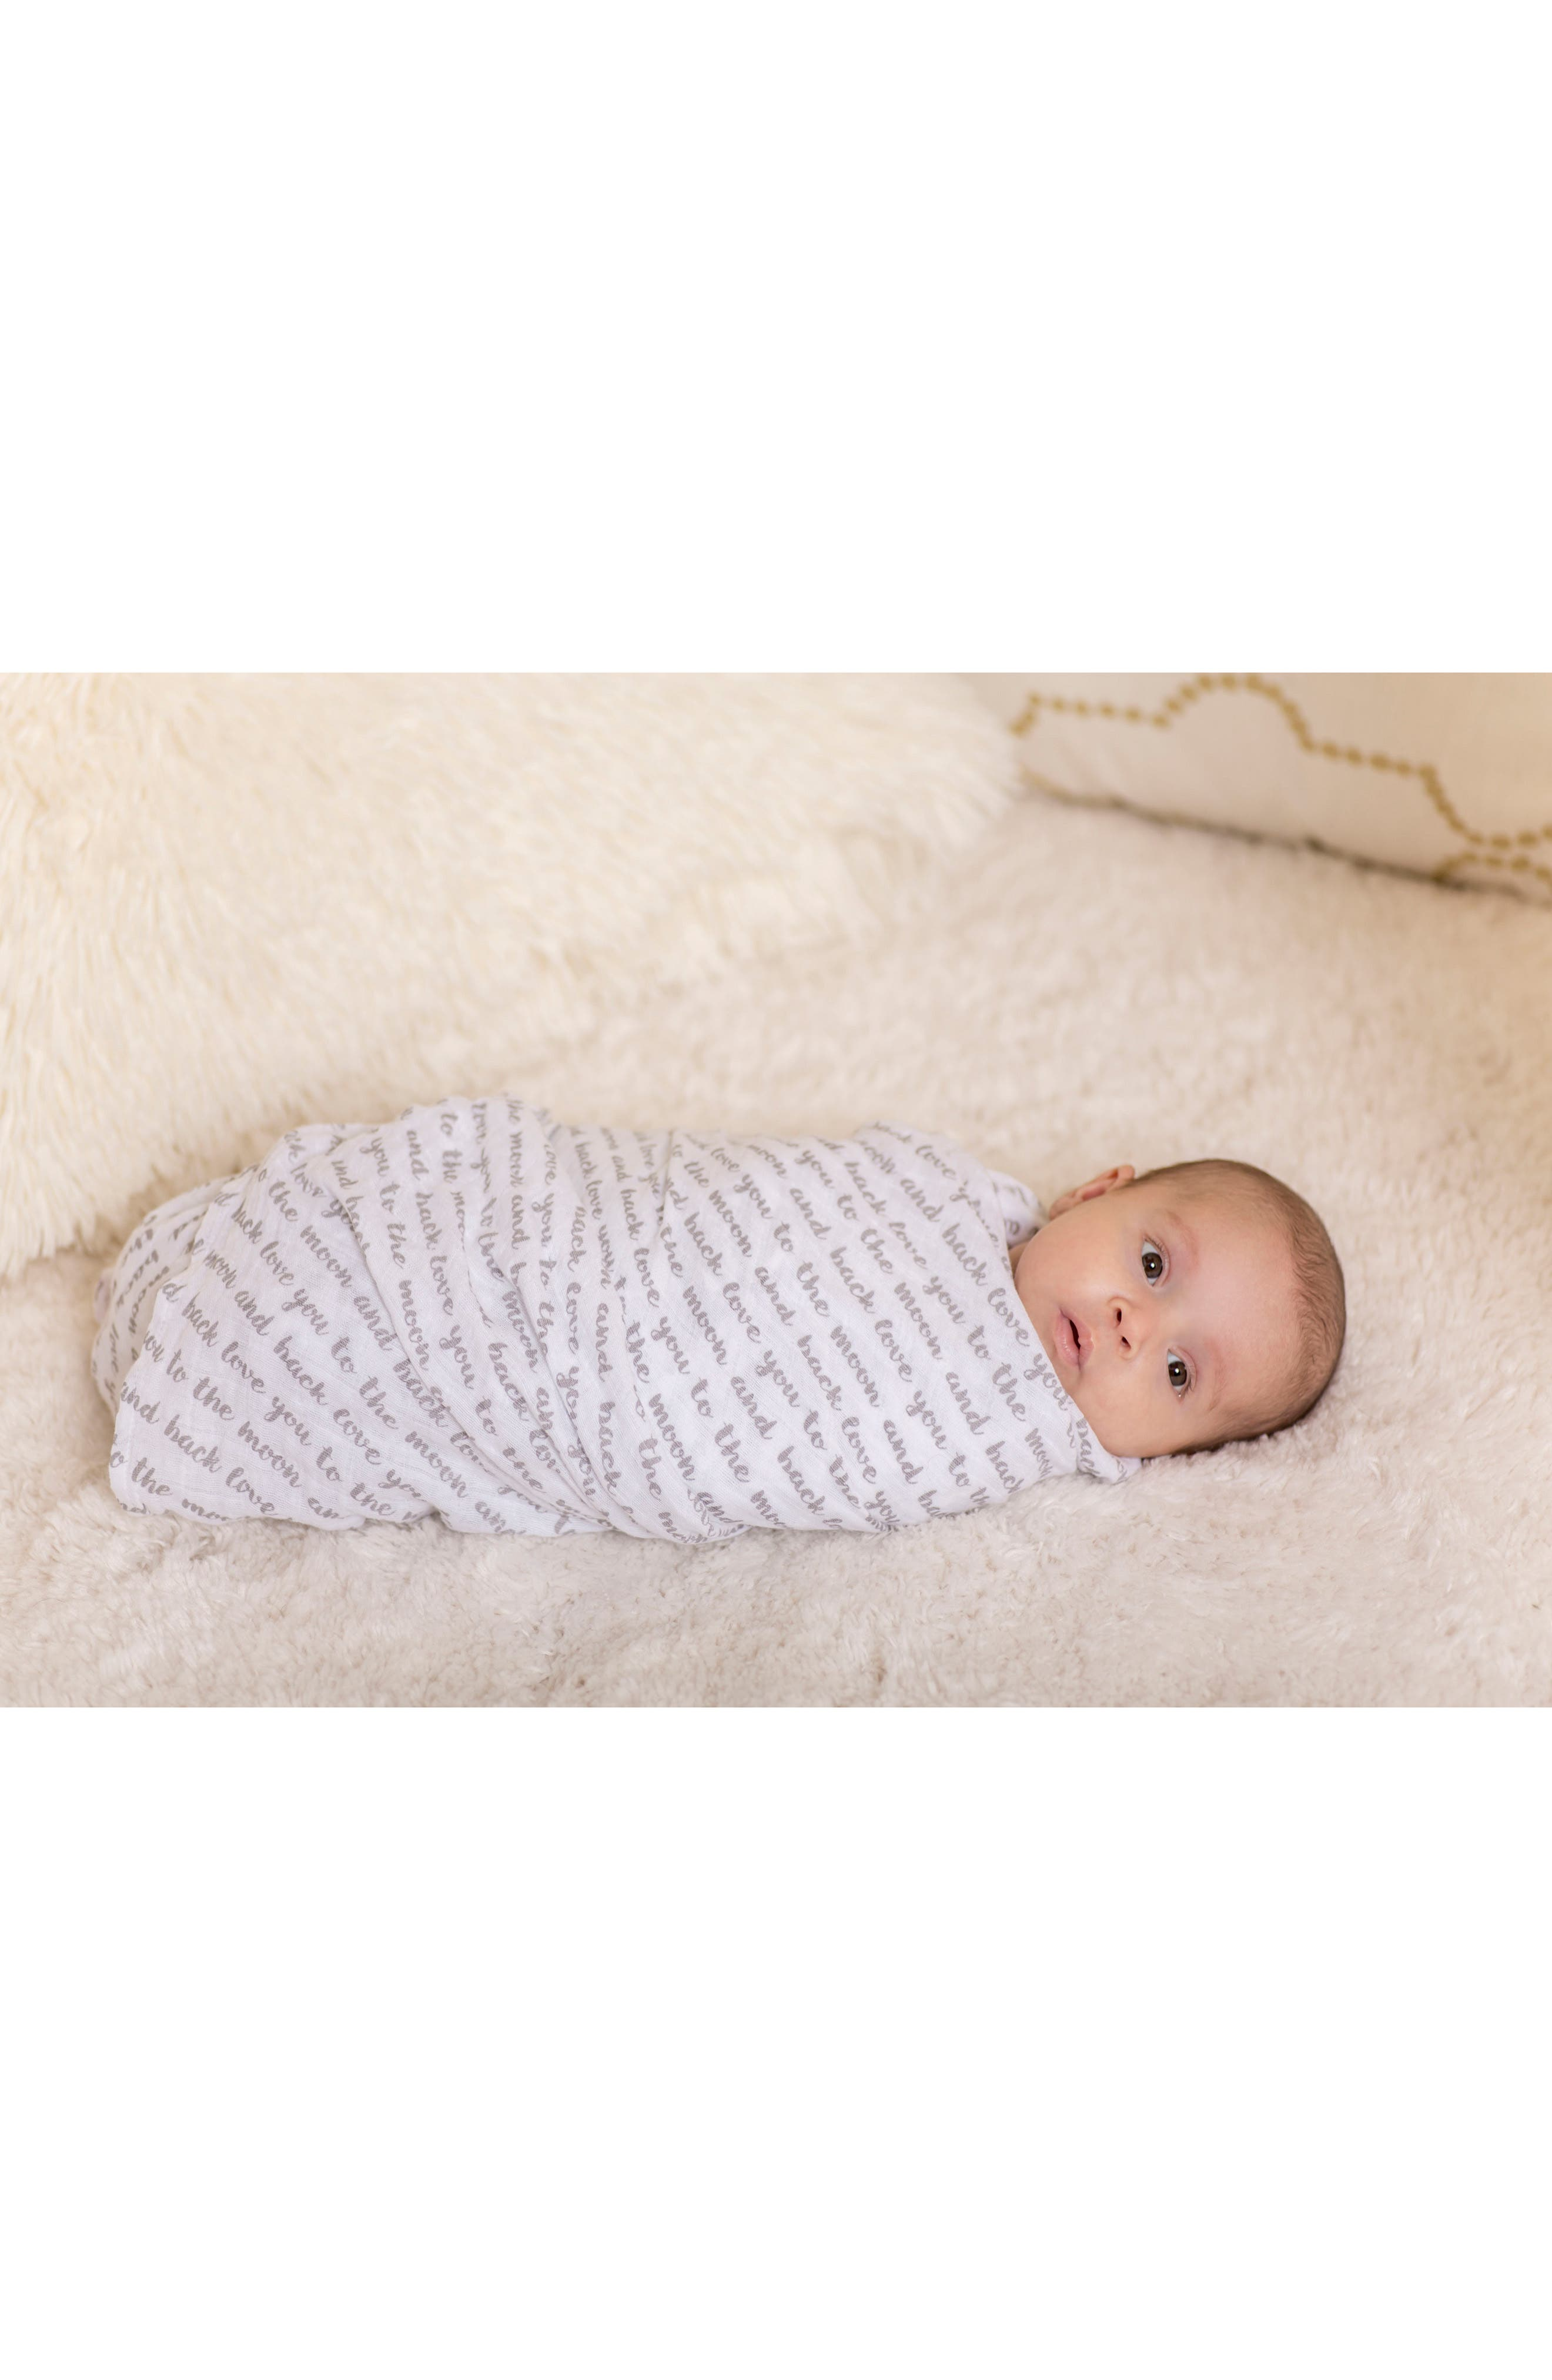 2-Pack Muslin Swaddling Cloths & Car Seat Cover Set,                             Alternate thumbnail 6, color,                             LOVE AND LUNA